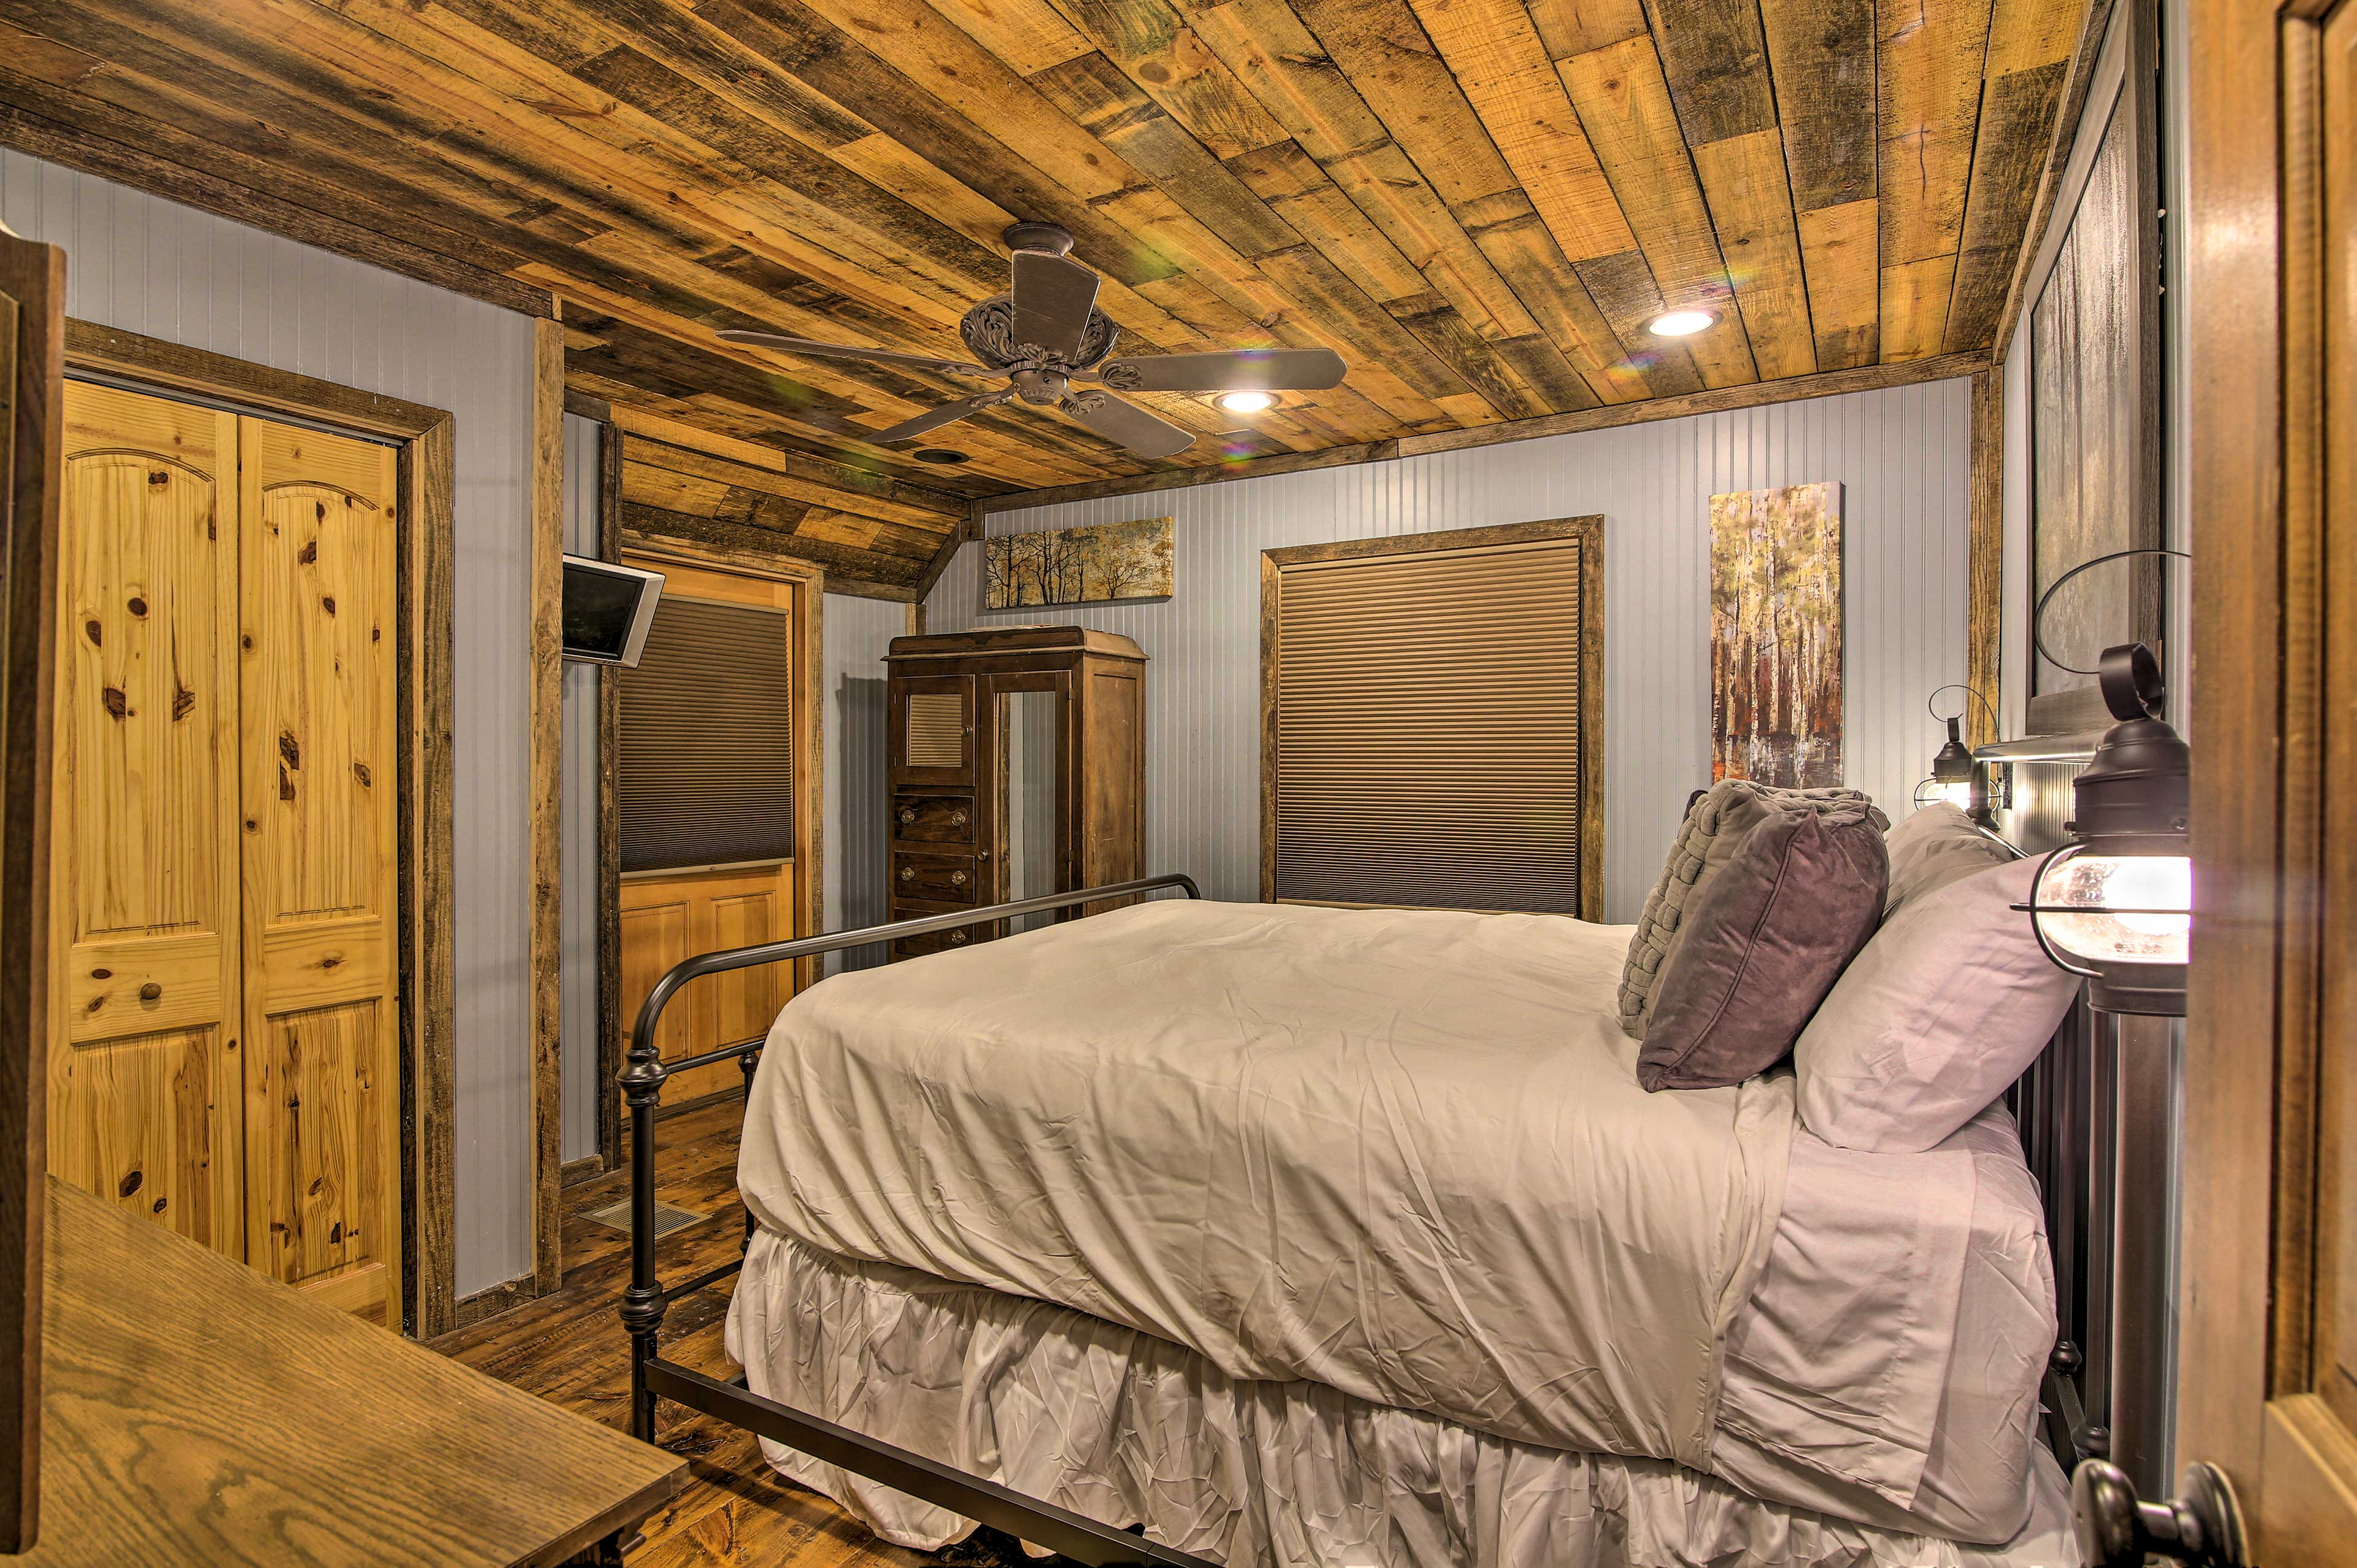 The master bedroom features a king bed, flat-screen TV, and wooden detailing.